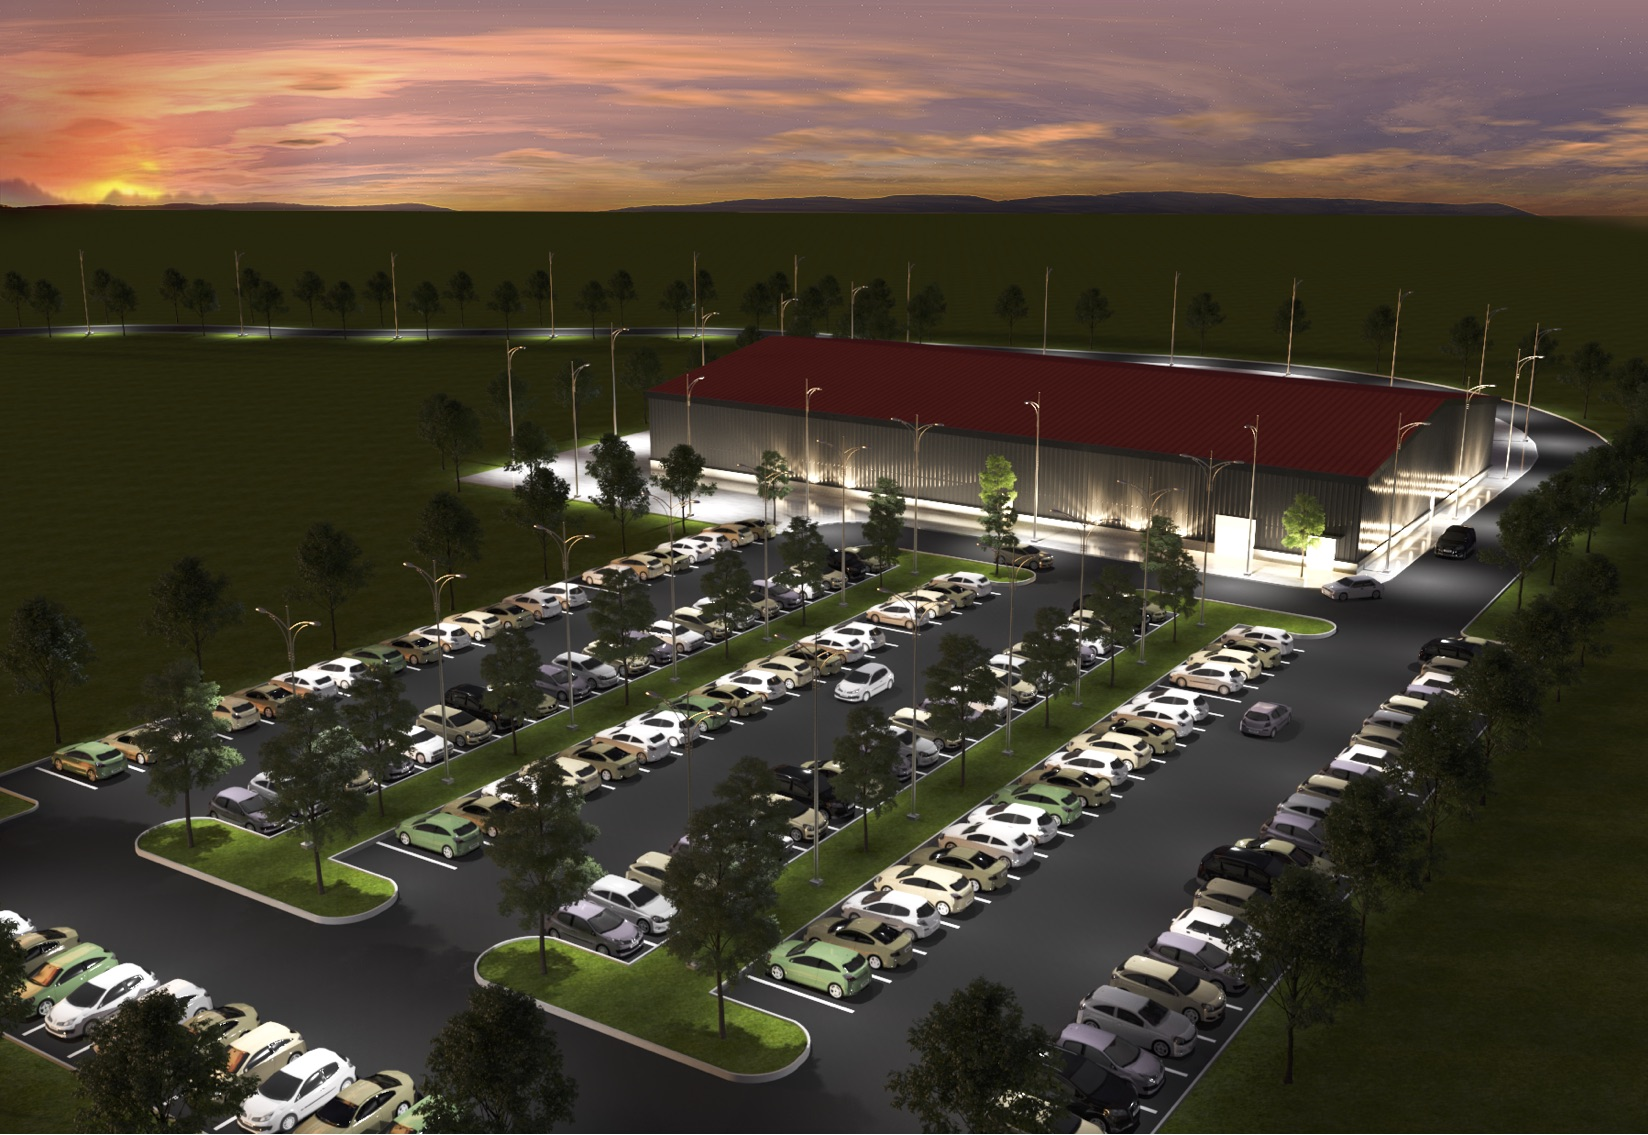 Rendering of indoor sports facility with parking lot.